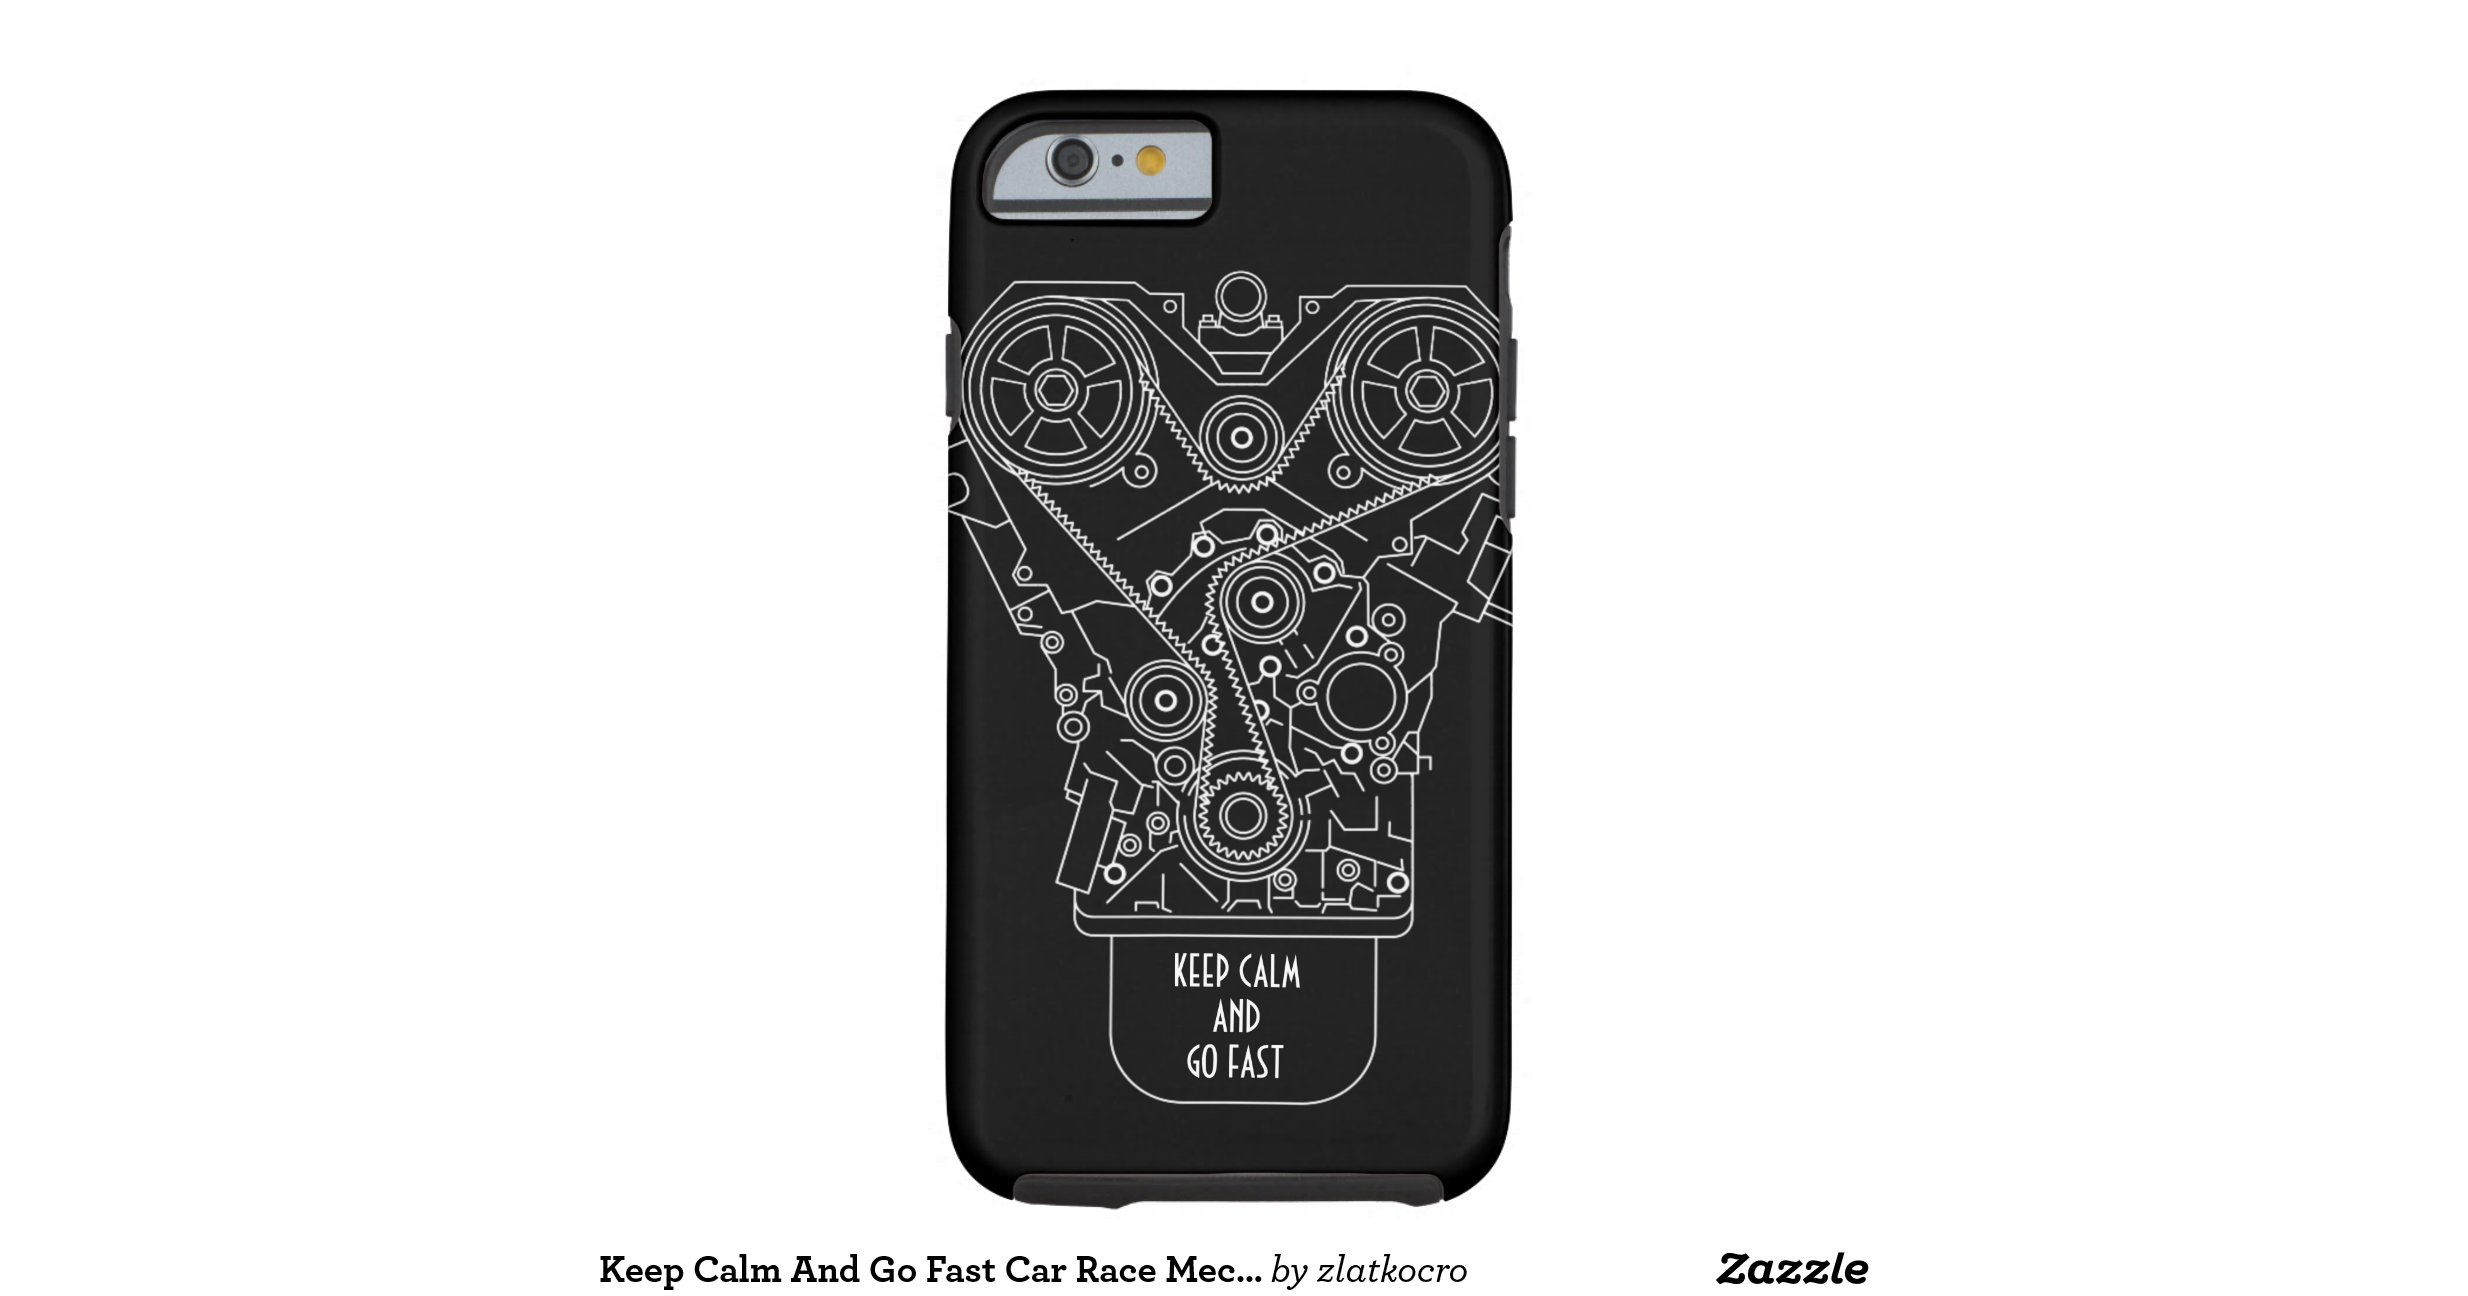 keep calm and go fast car race mechanic tough iphone 6 case zazzle. Black Bedroom Furniture Sets. Home Design Ideas